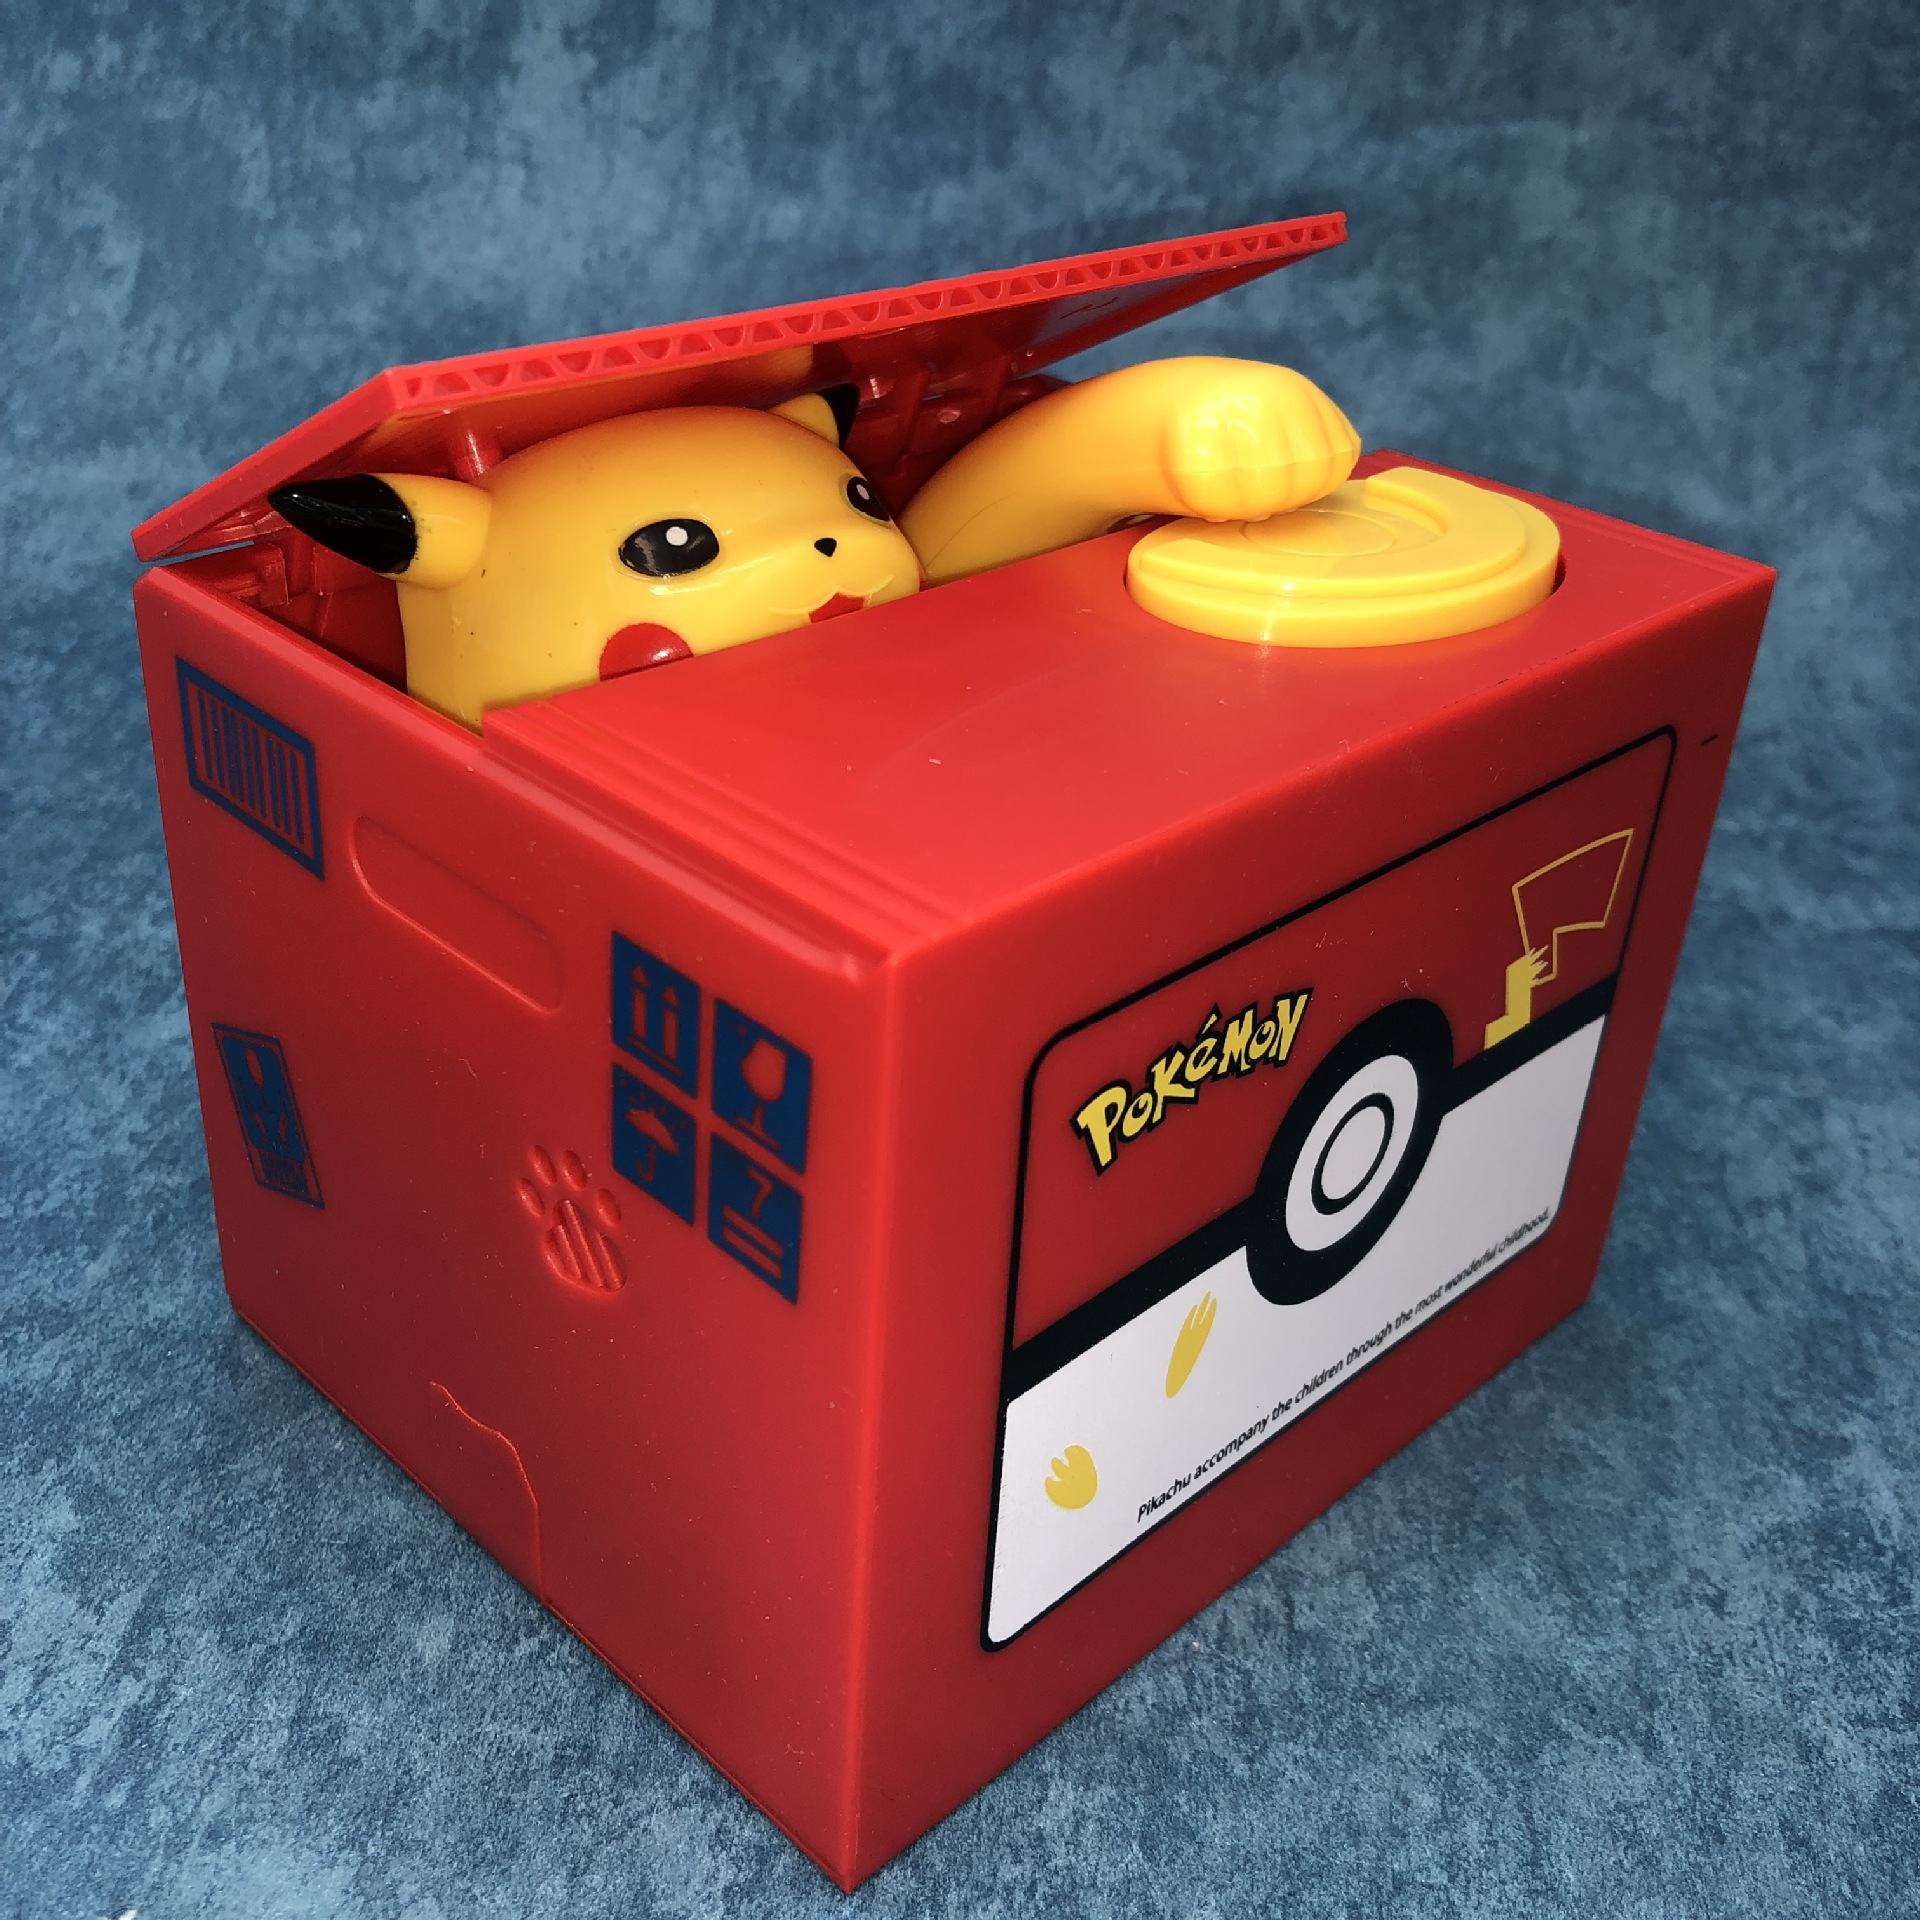 High Quality Electronic Money Box Pokemon Pikachu Piggy Bank Steal Coin Automatically For Kids Friend Birthday Christmas Gift